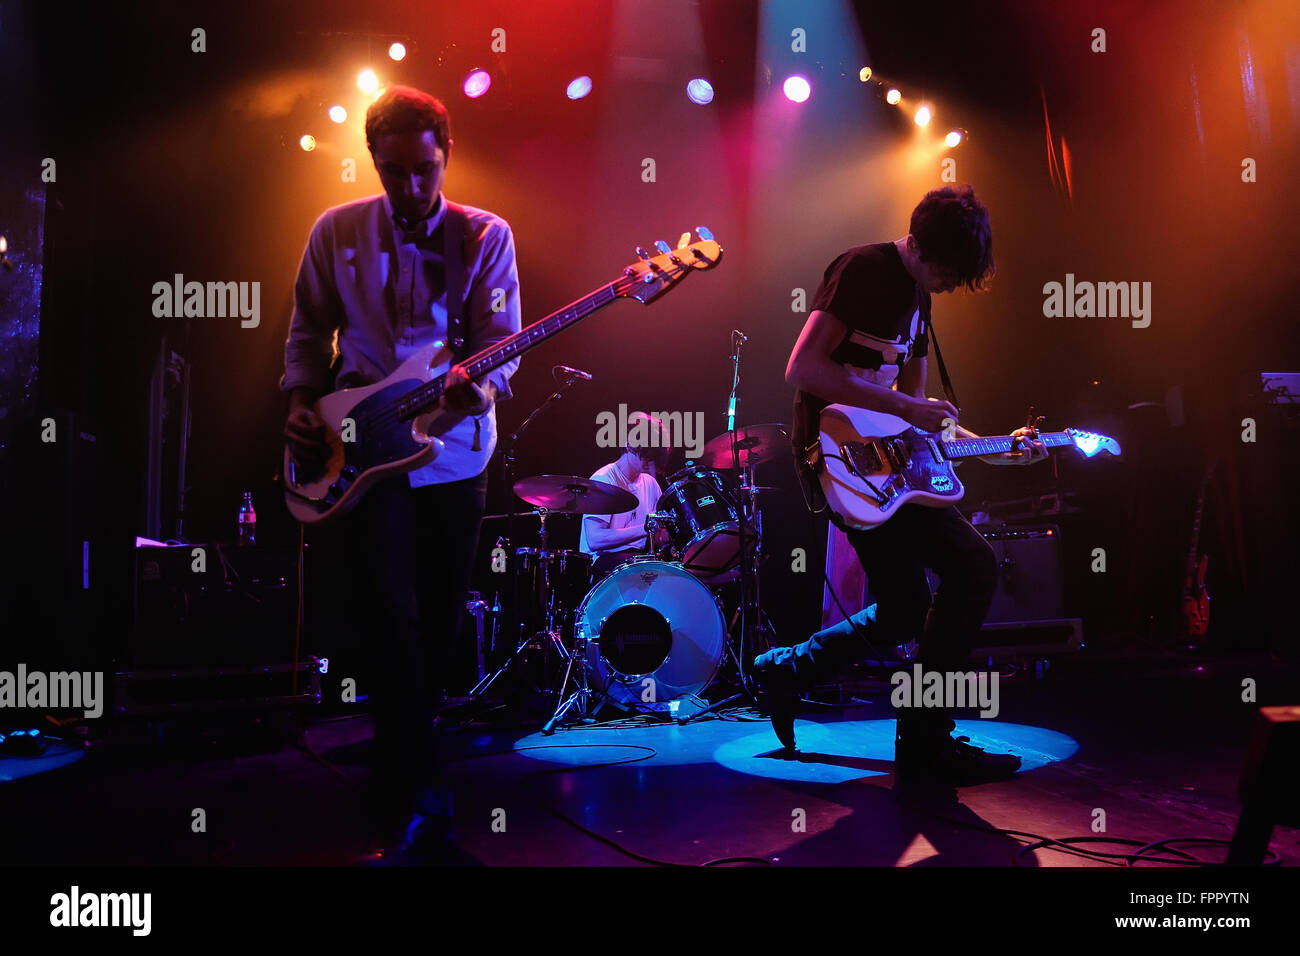 BARCELONA - JUN 20: The Pains of Being Pure at Heart band performs at Apolo on June 20, 2011 in Barcelona, Spain. - Stock Image